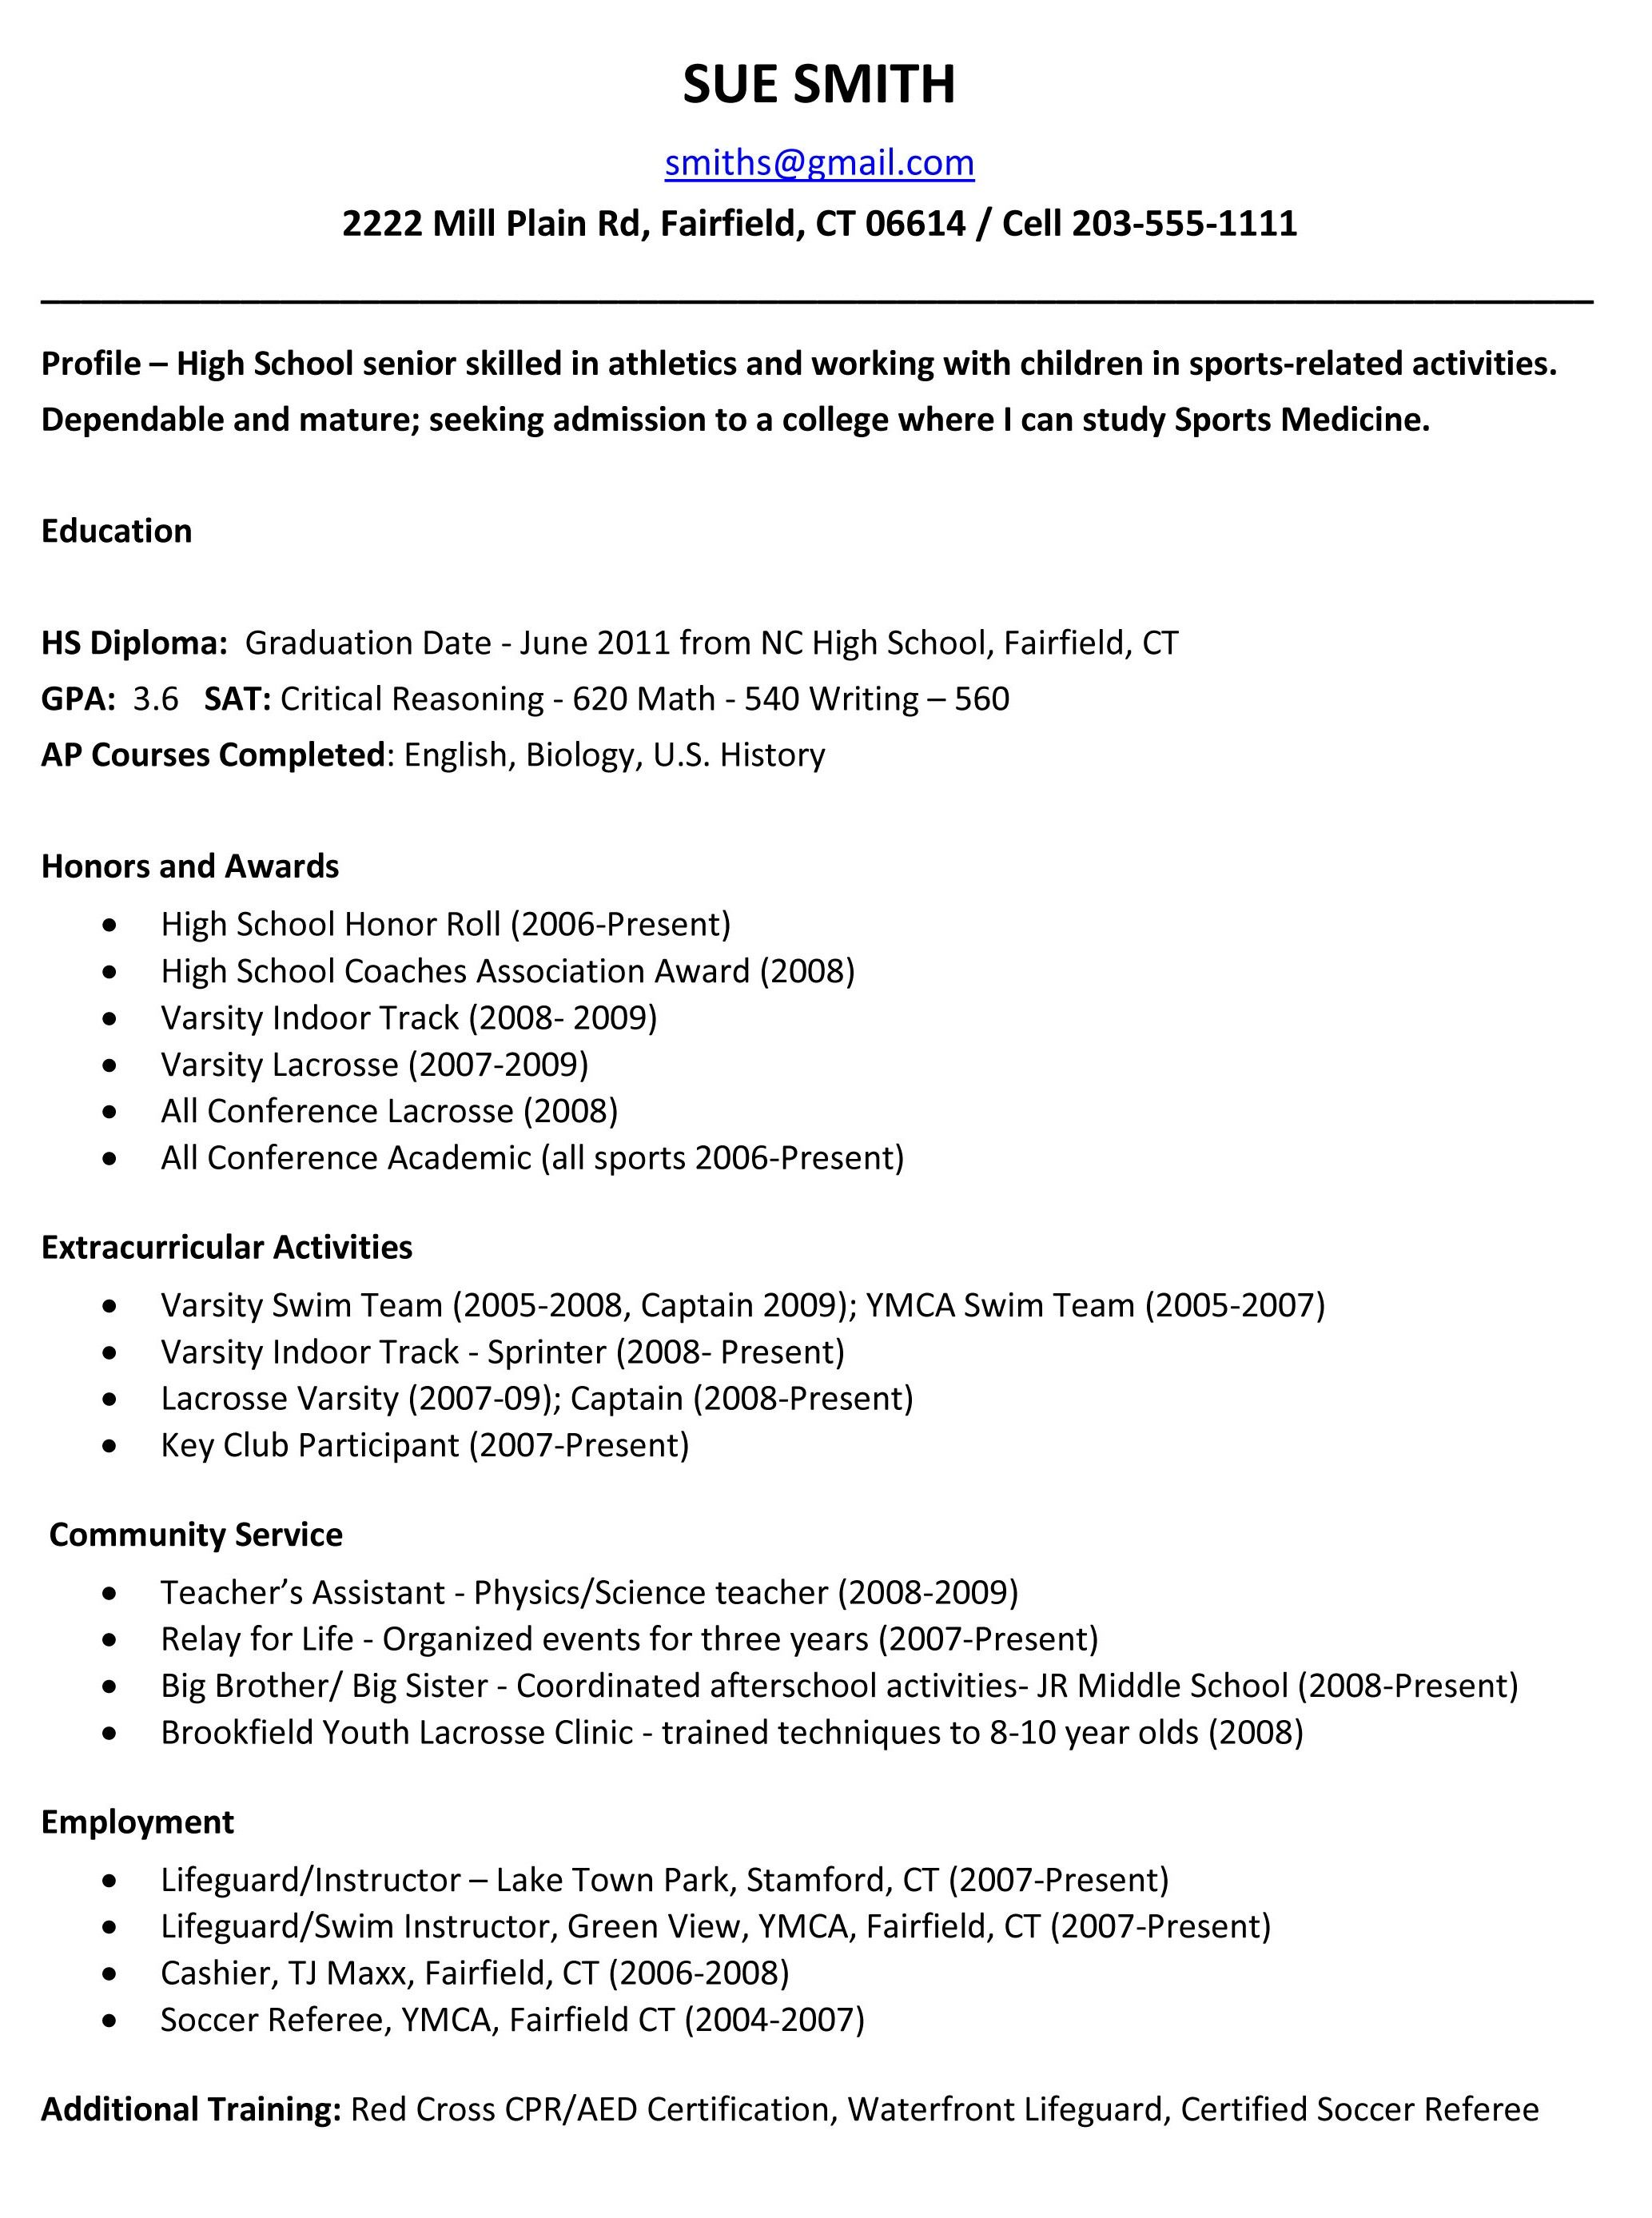 Resume Examples For College Applications Example Resume For High School Students For College